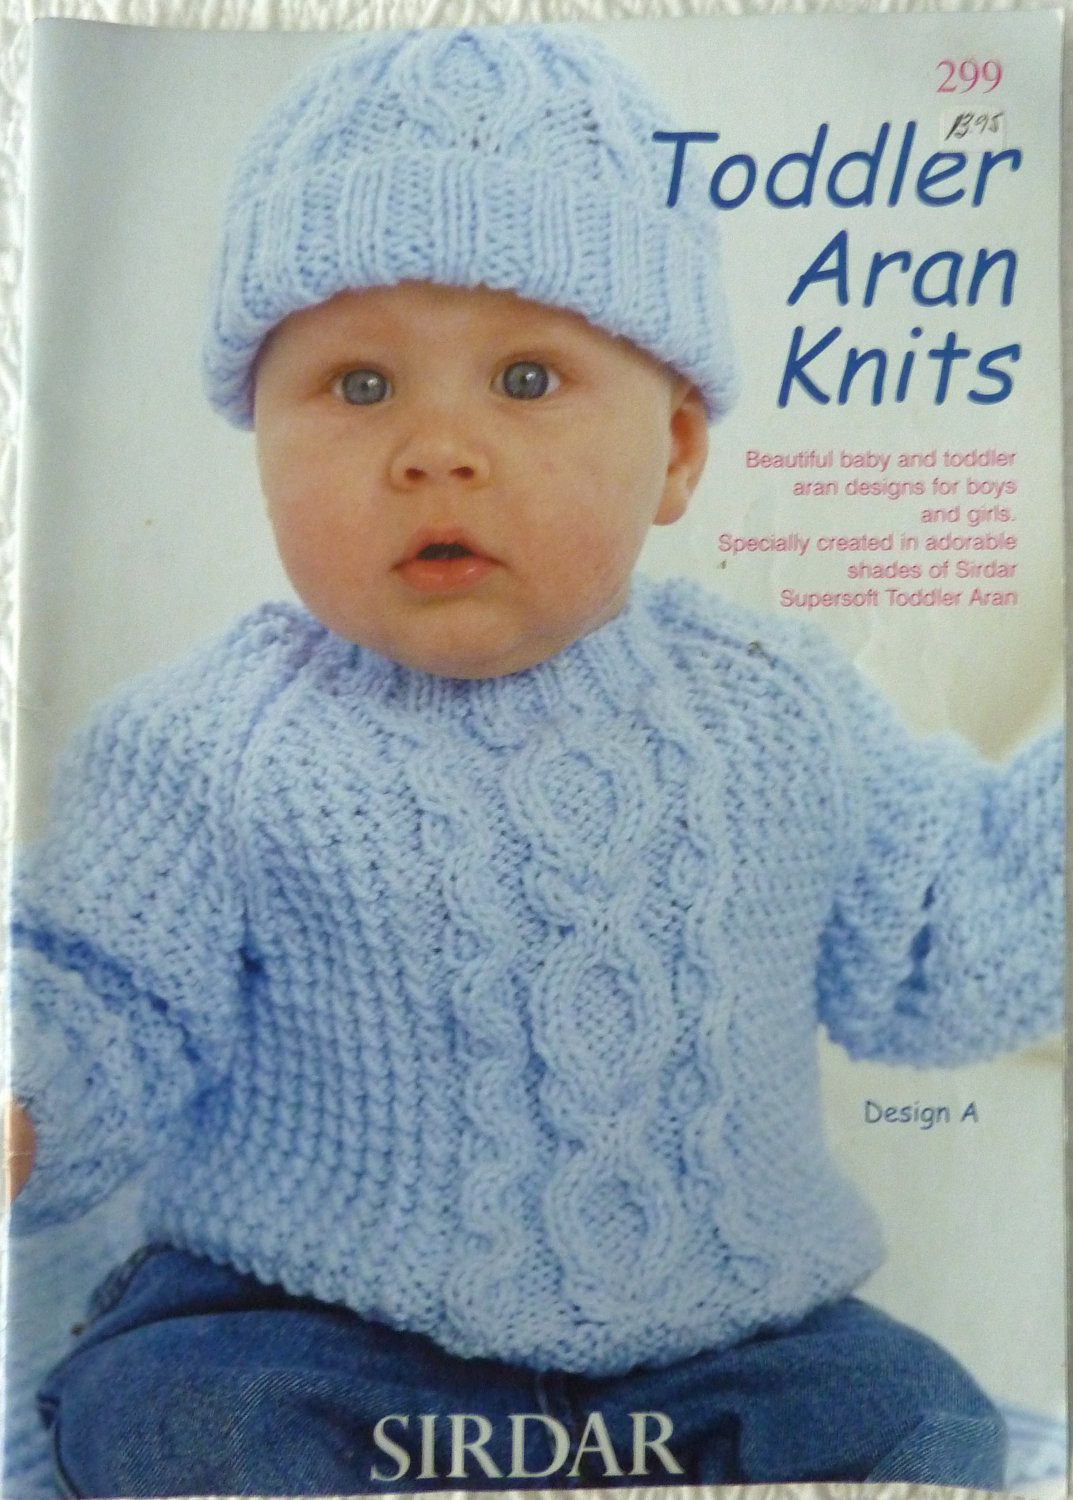 Knitting Patterns for toddlers Inspirational Sirdar 299 Knitting Pattern Book Baby and toddlers Designs Of Awesome 49 Images Knitting Patterns for toddlers